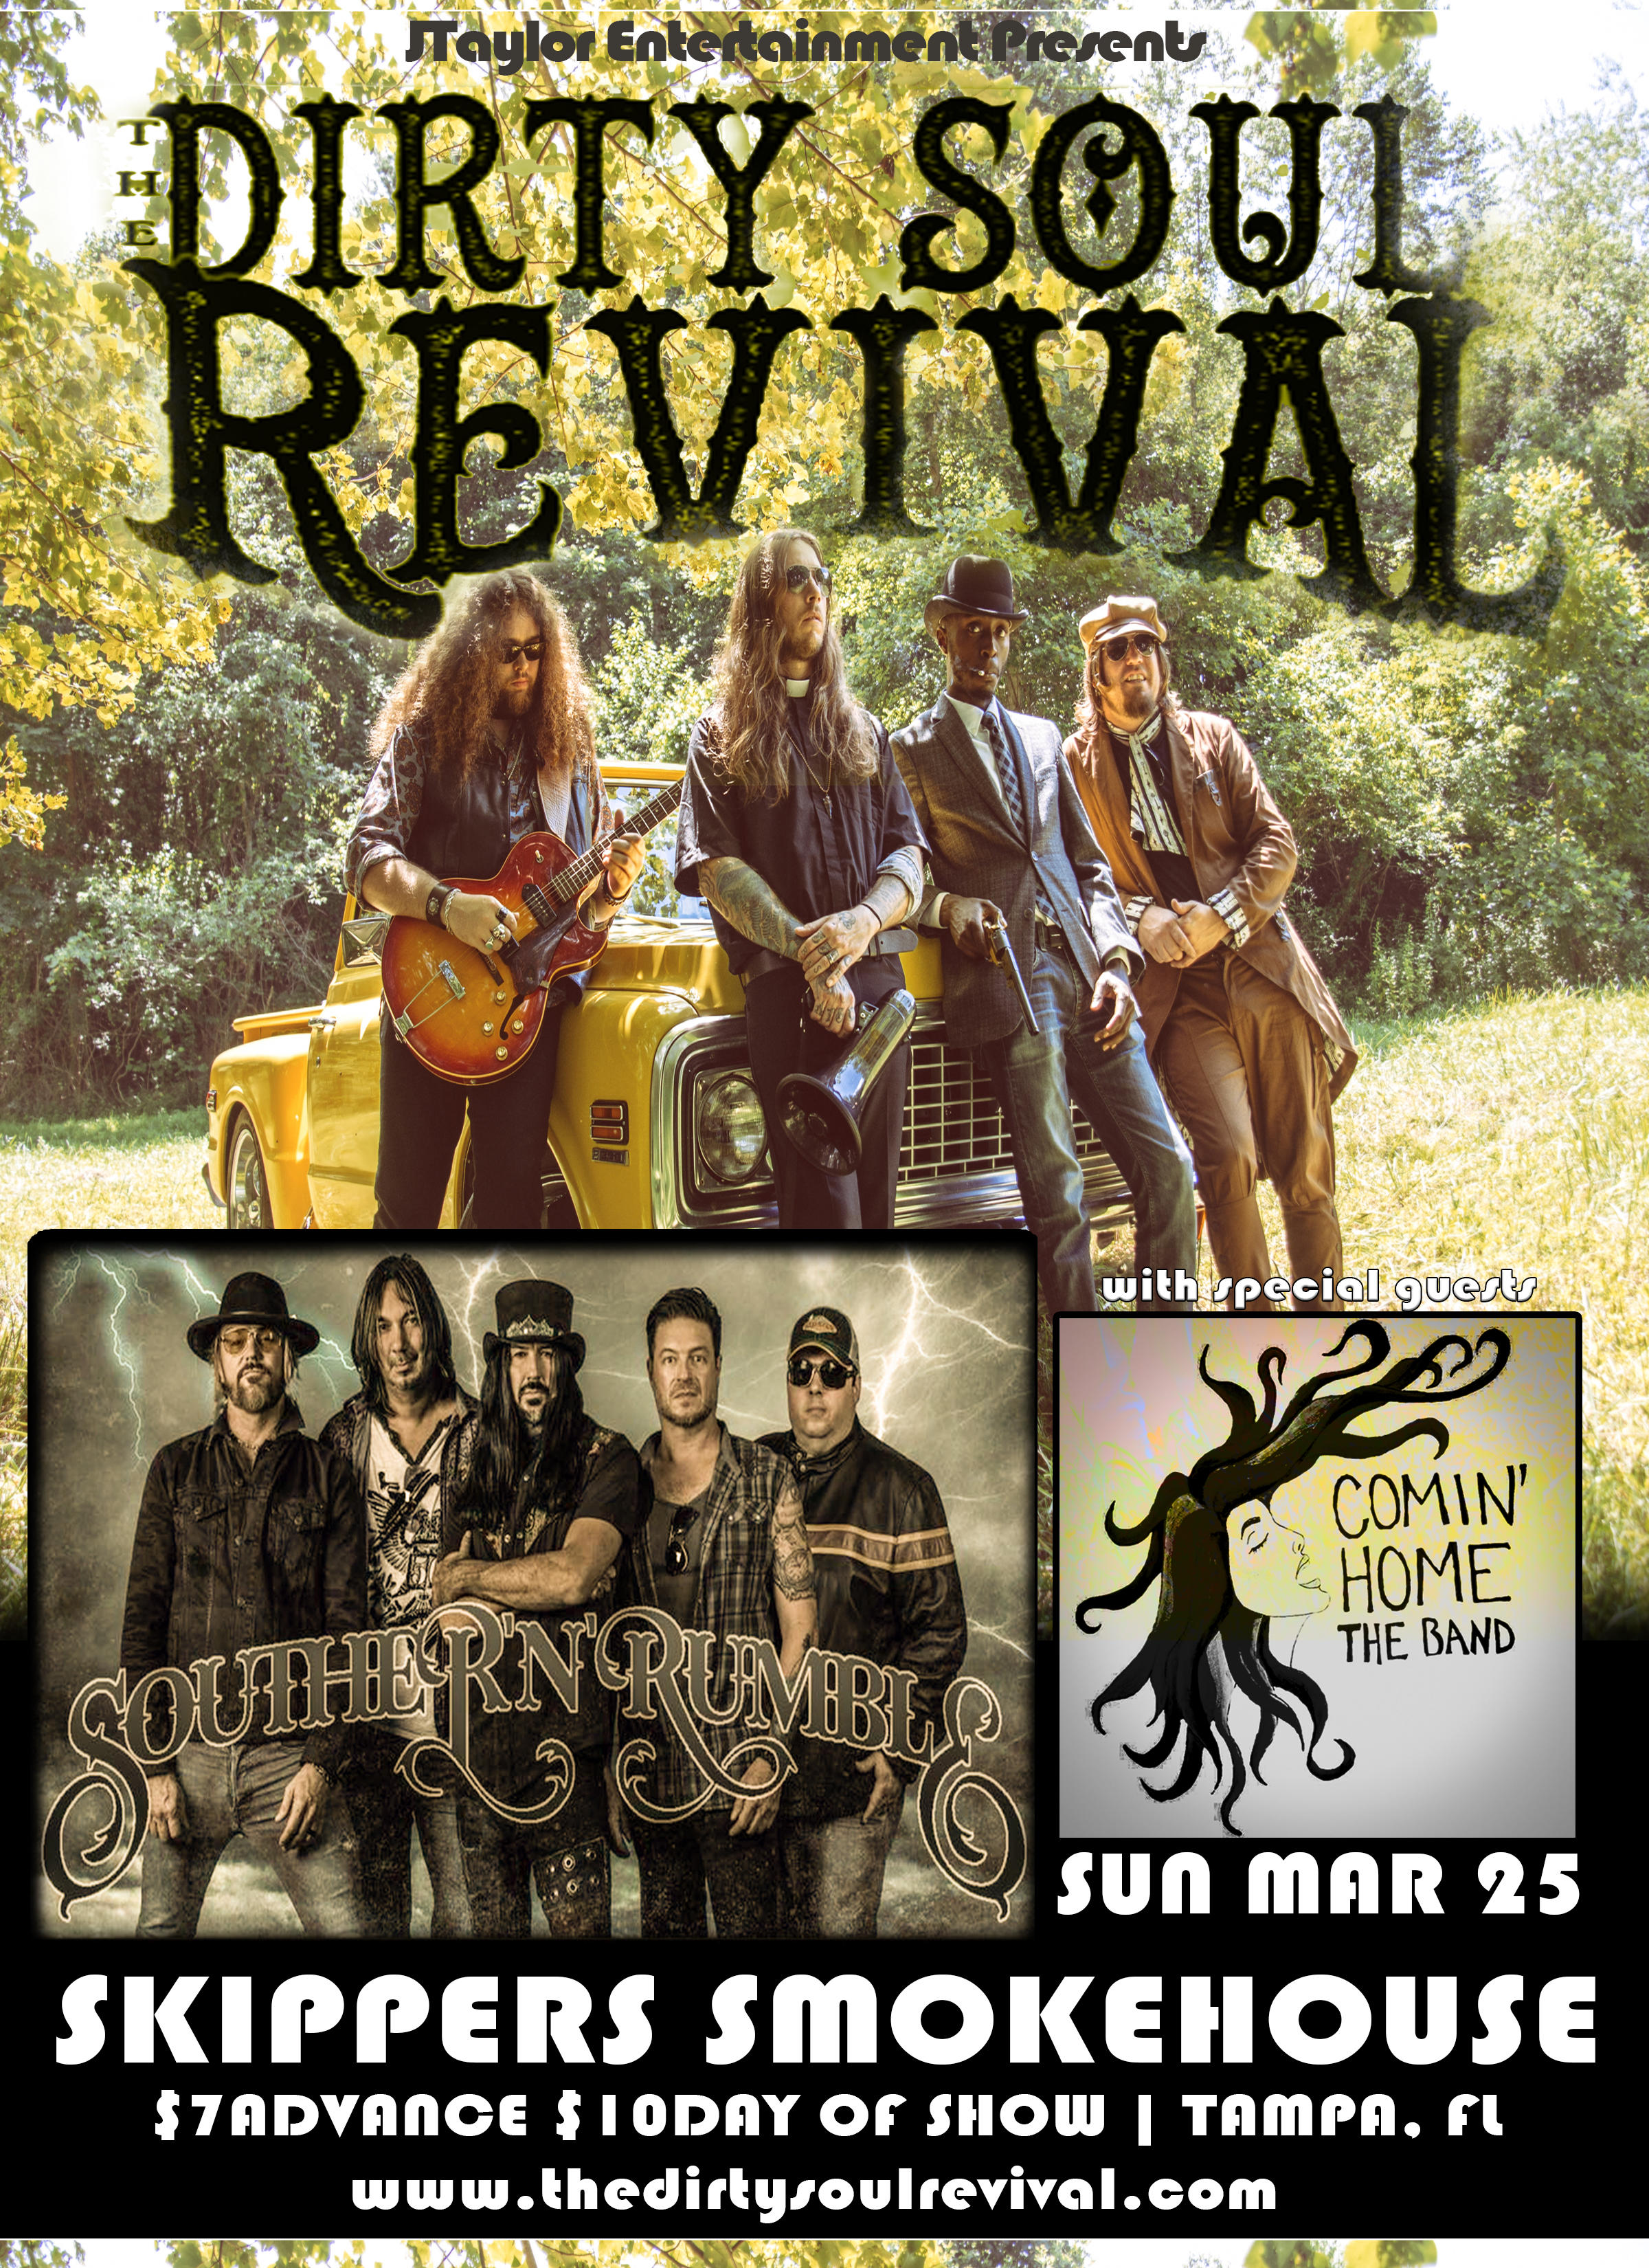 The Dirty Soul Revival & Southern Rumble at Skippers Smokehouse.